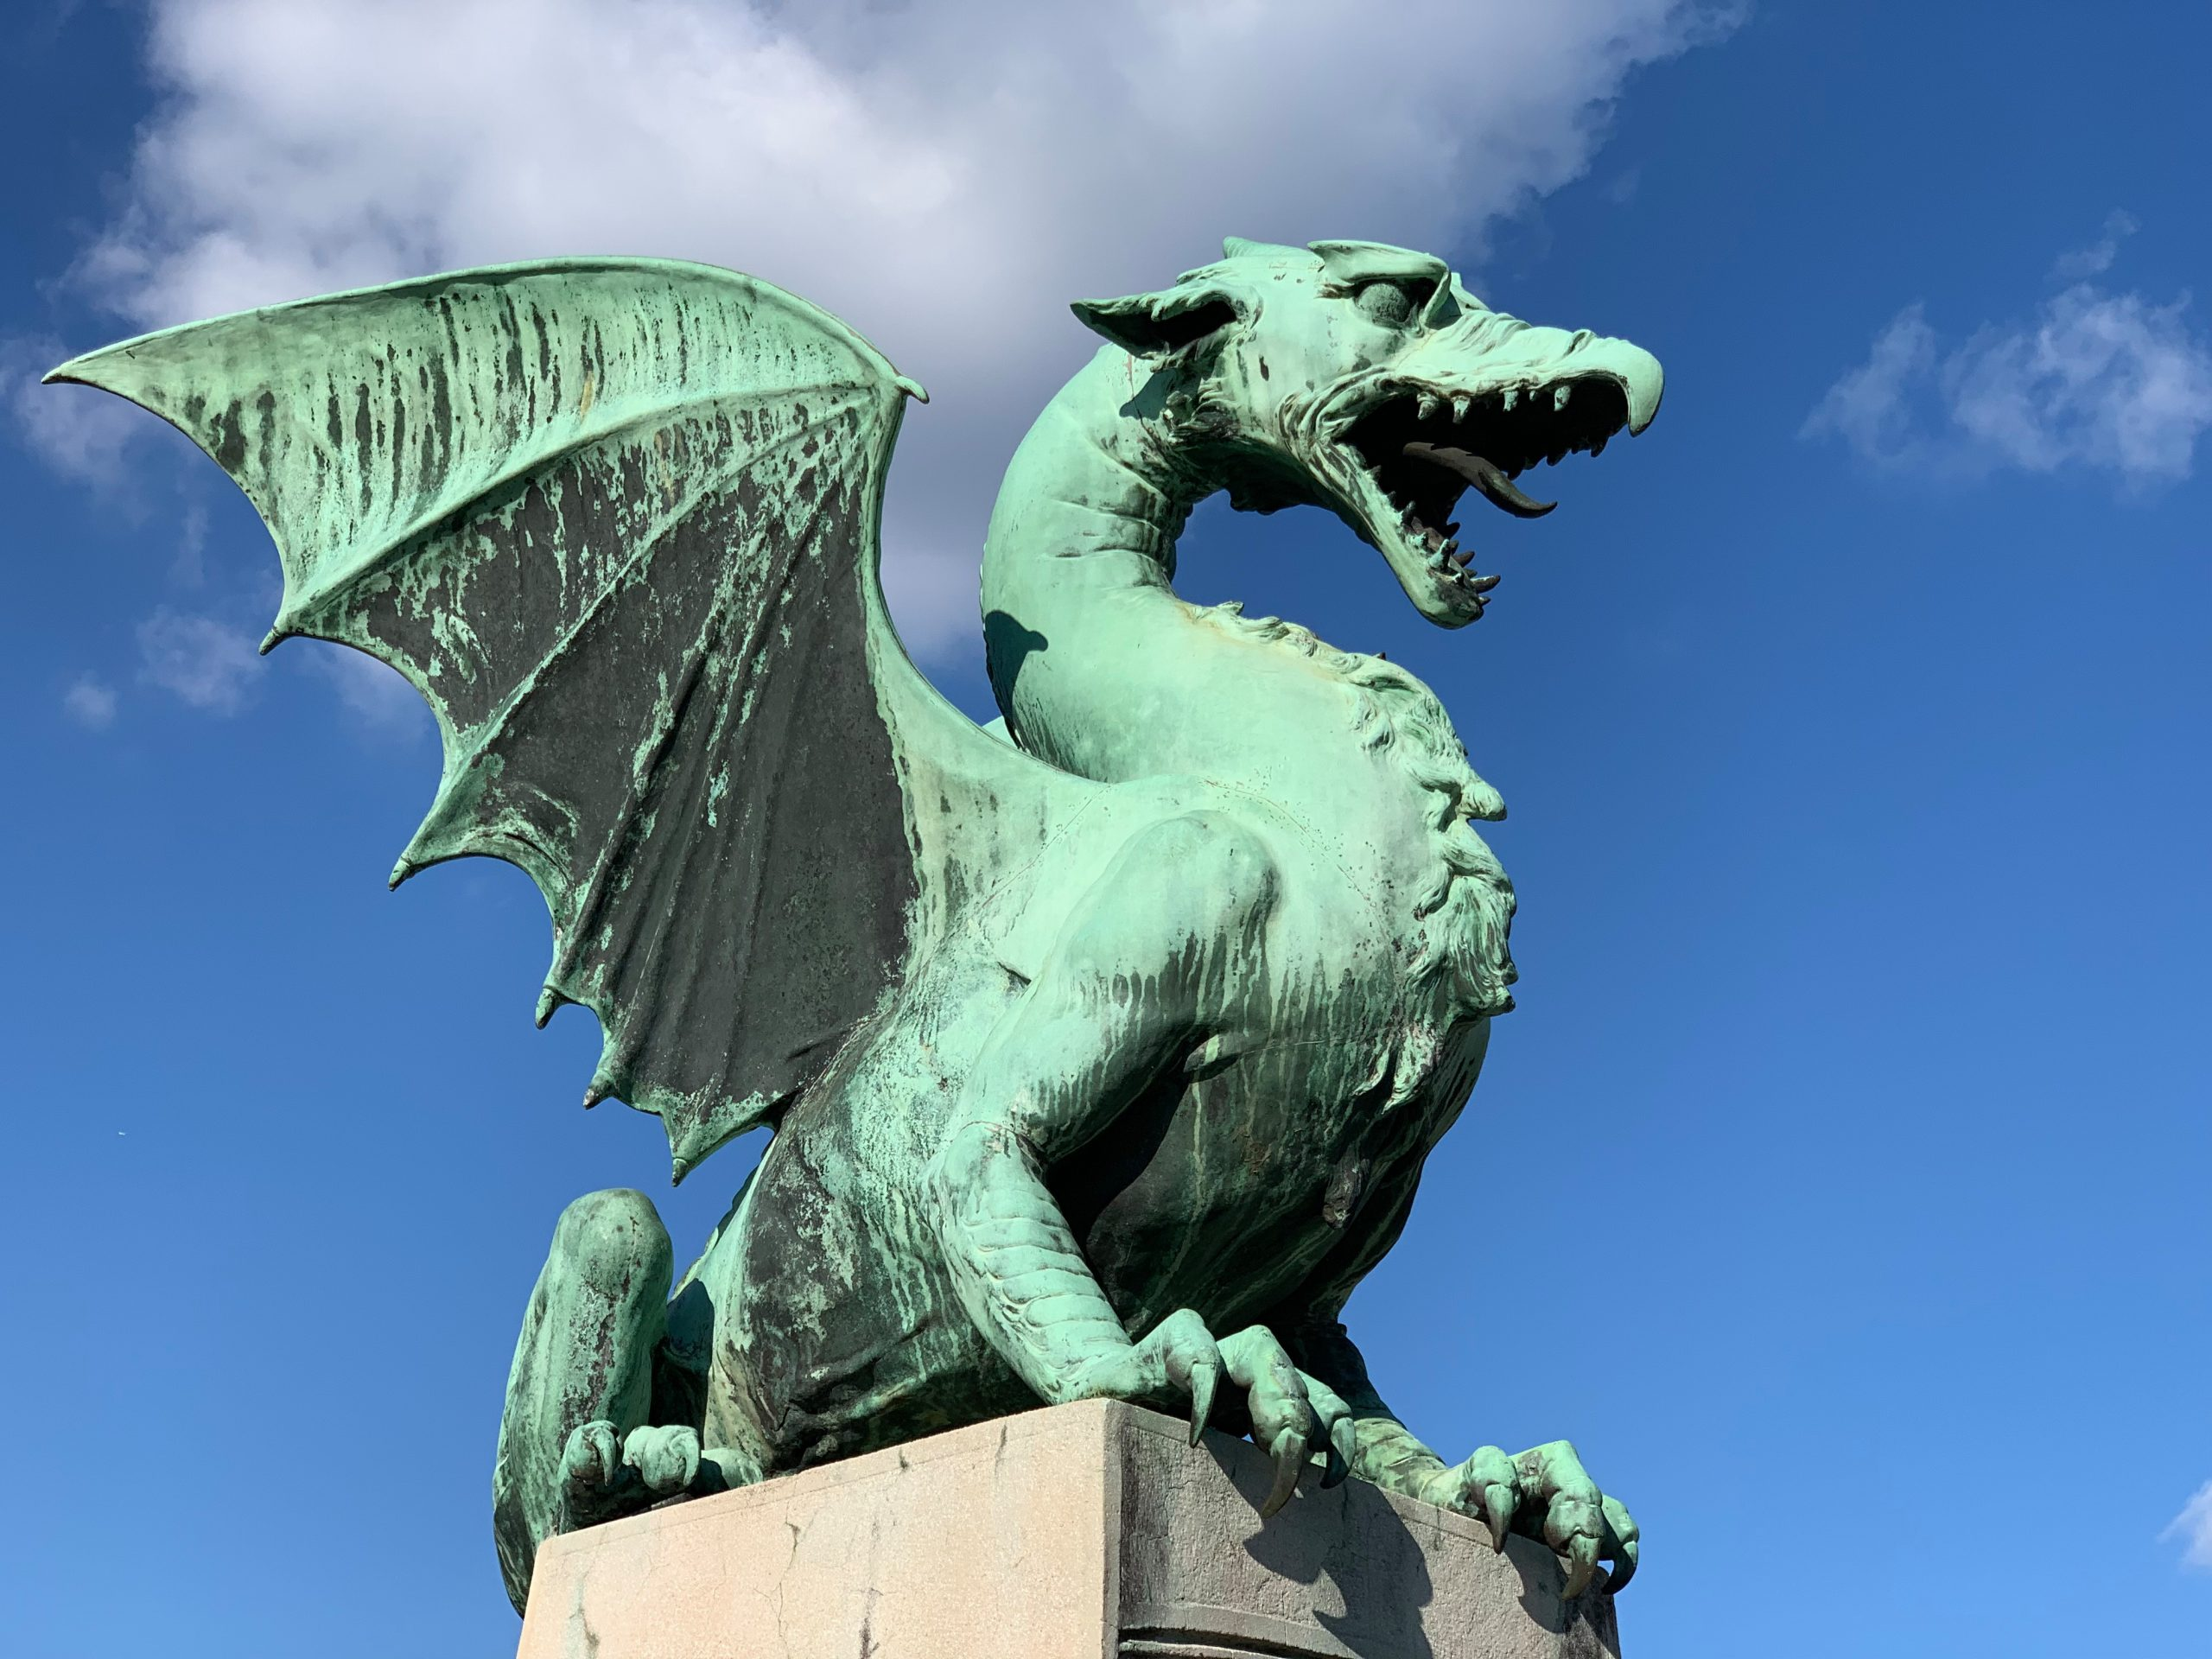 Dragon Statue in Slovenia